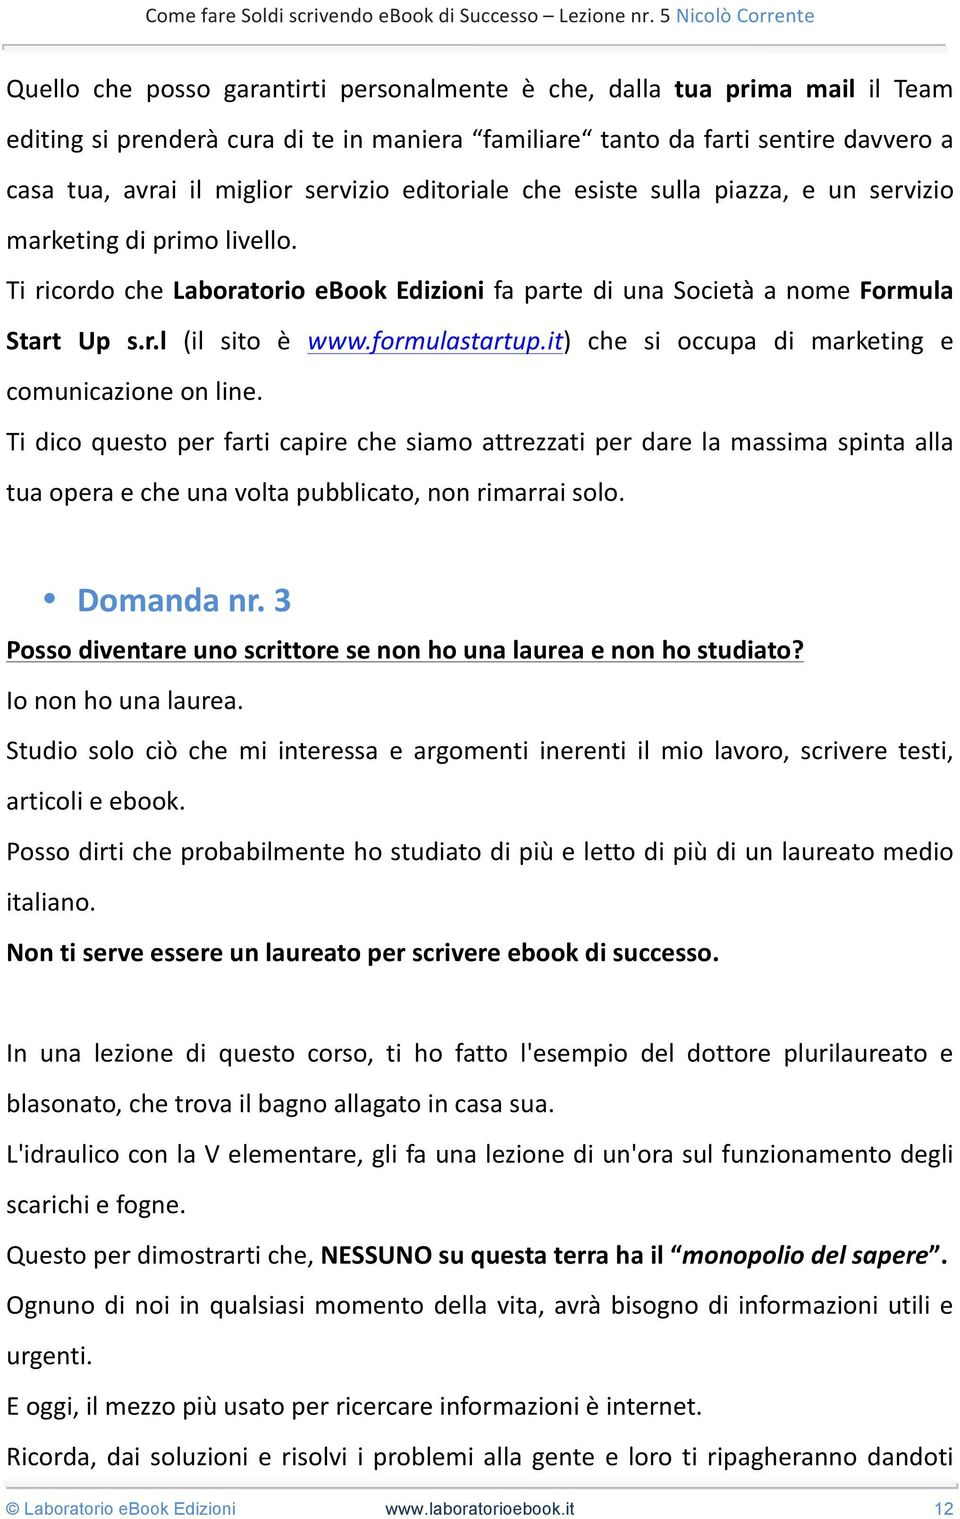 formulastartup.it) che si occupa di marketing e comunicazione on line.